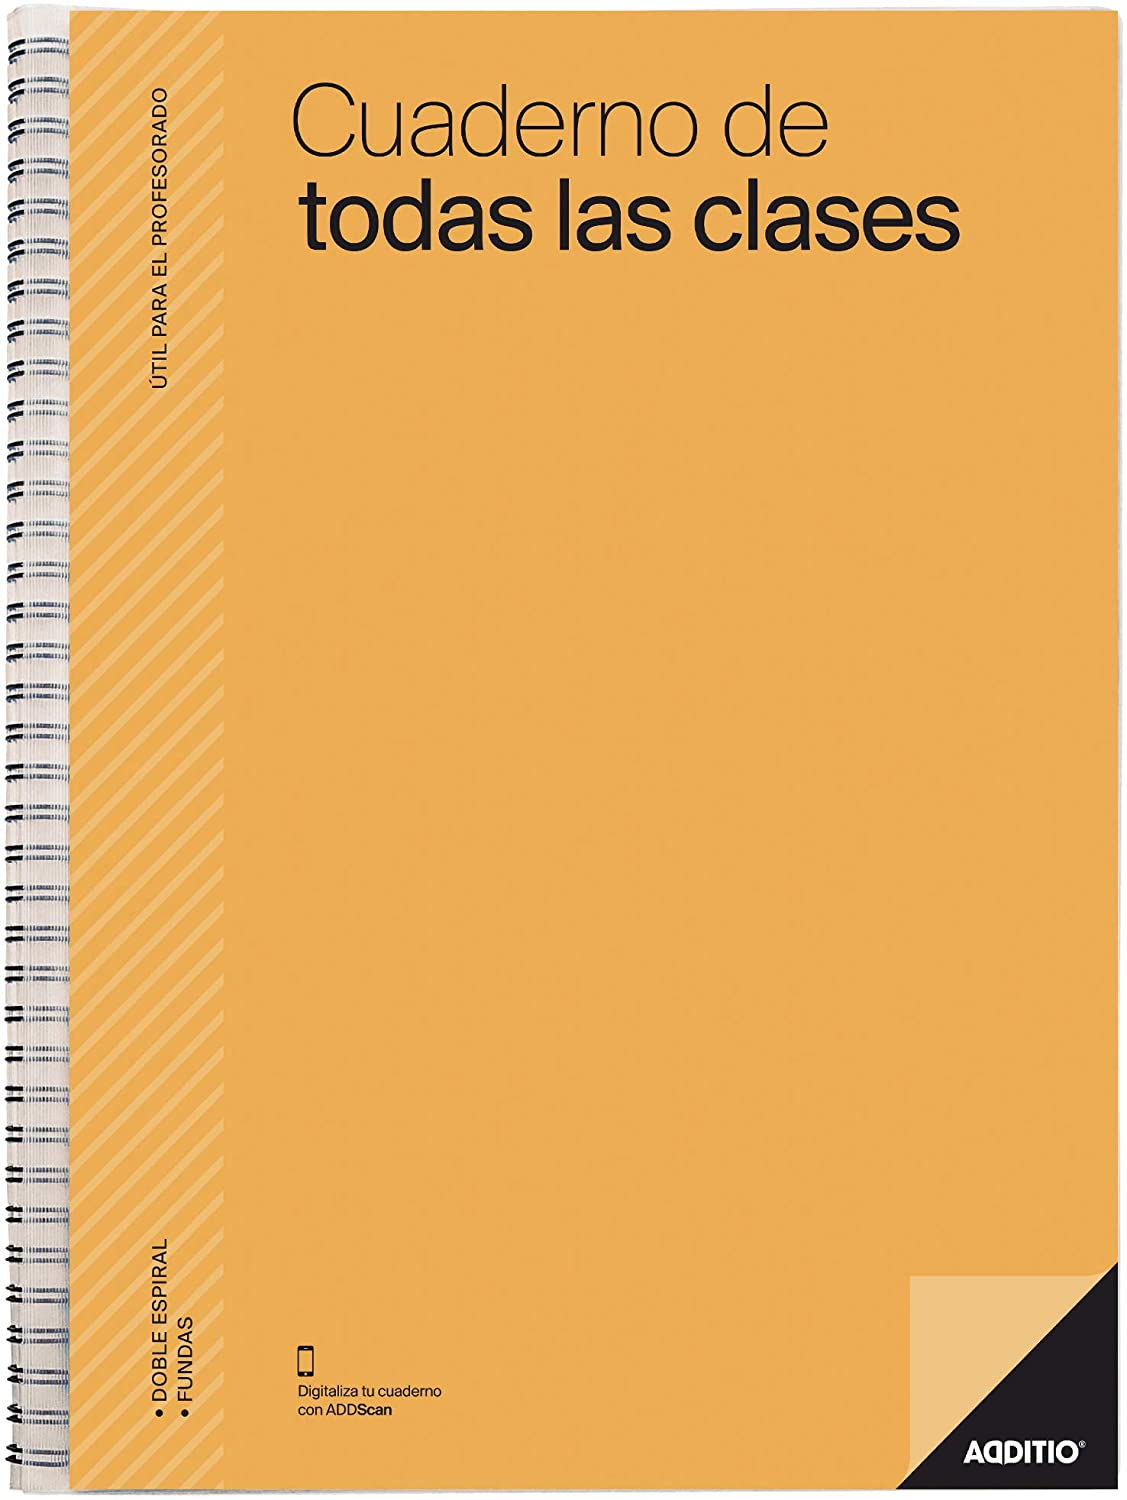 Amazon.com : CUADERNO DE TODAS LAS CLASES : Office Products